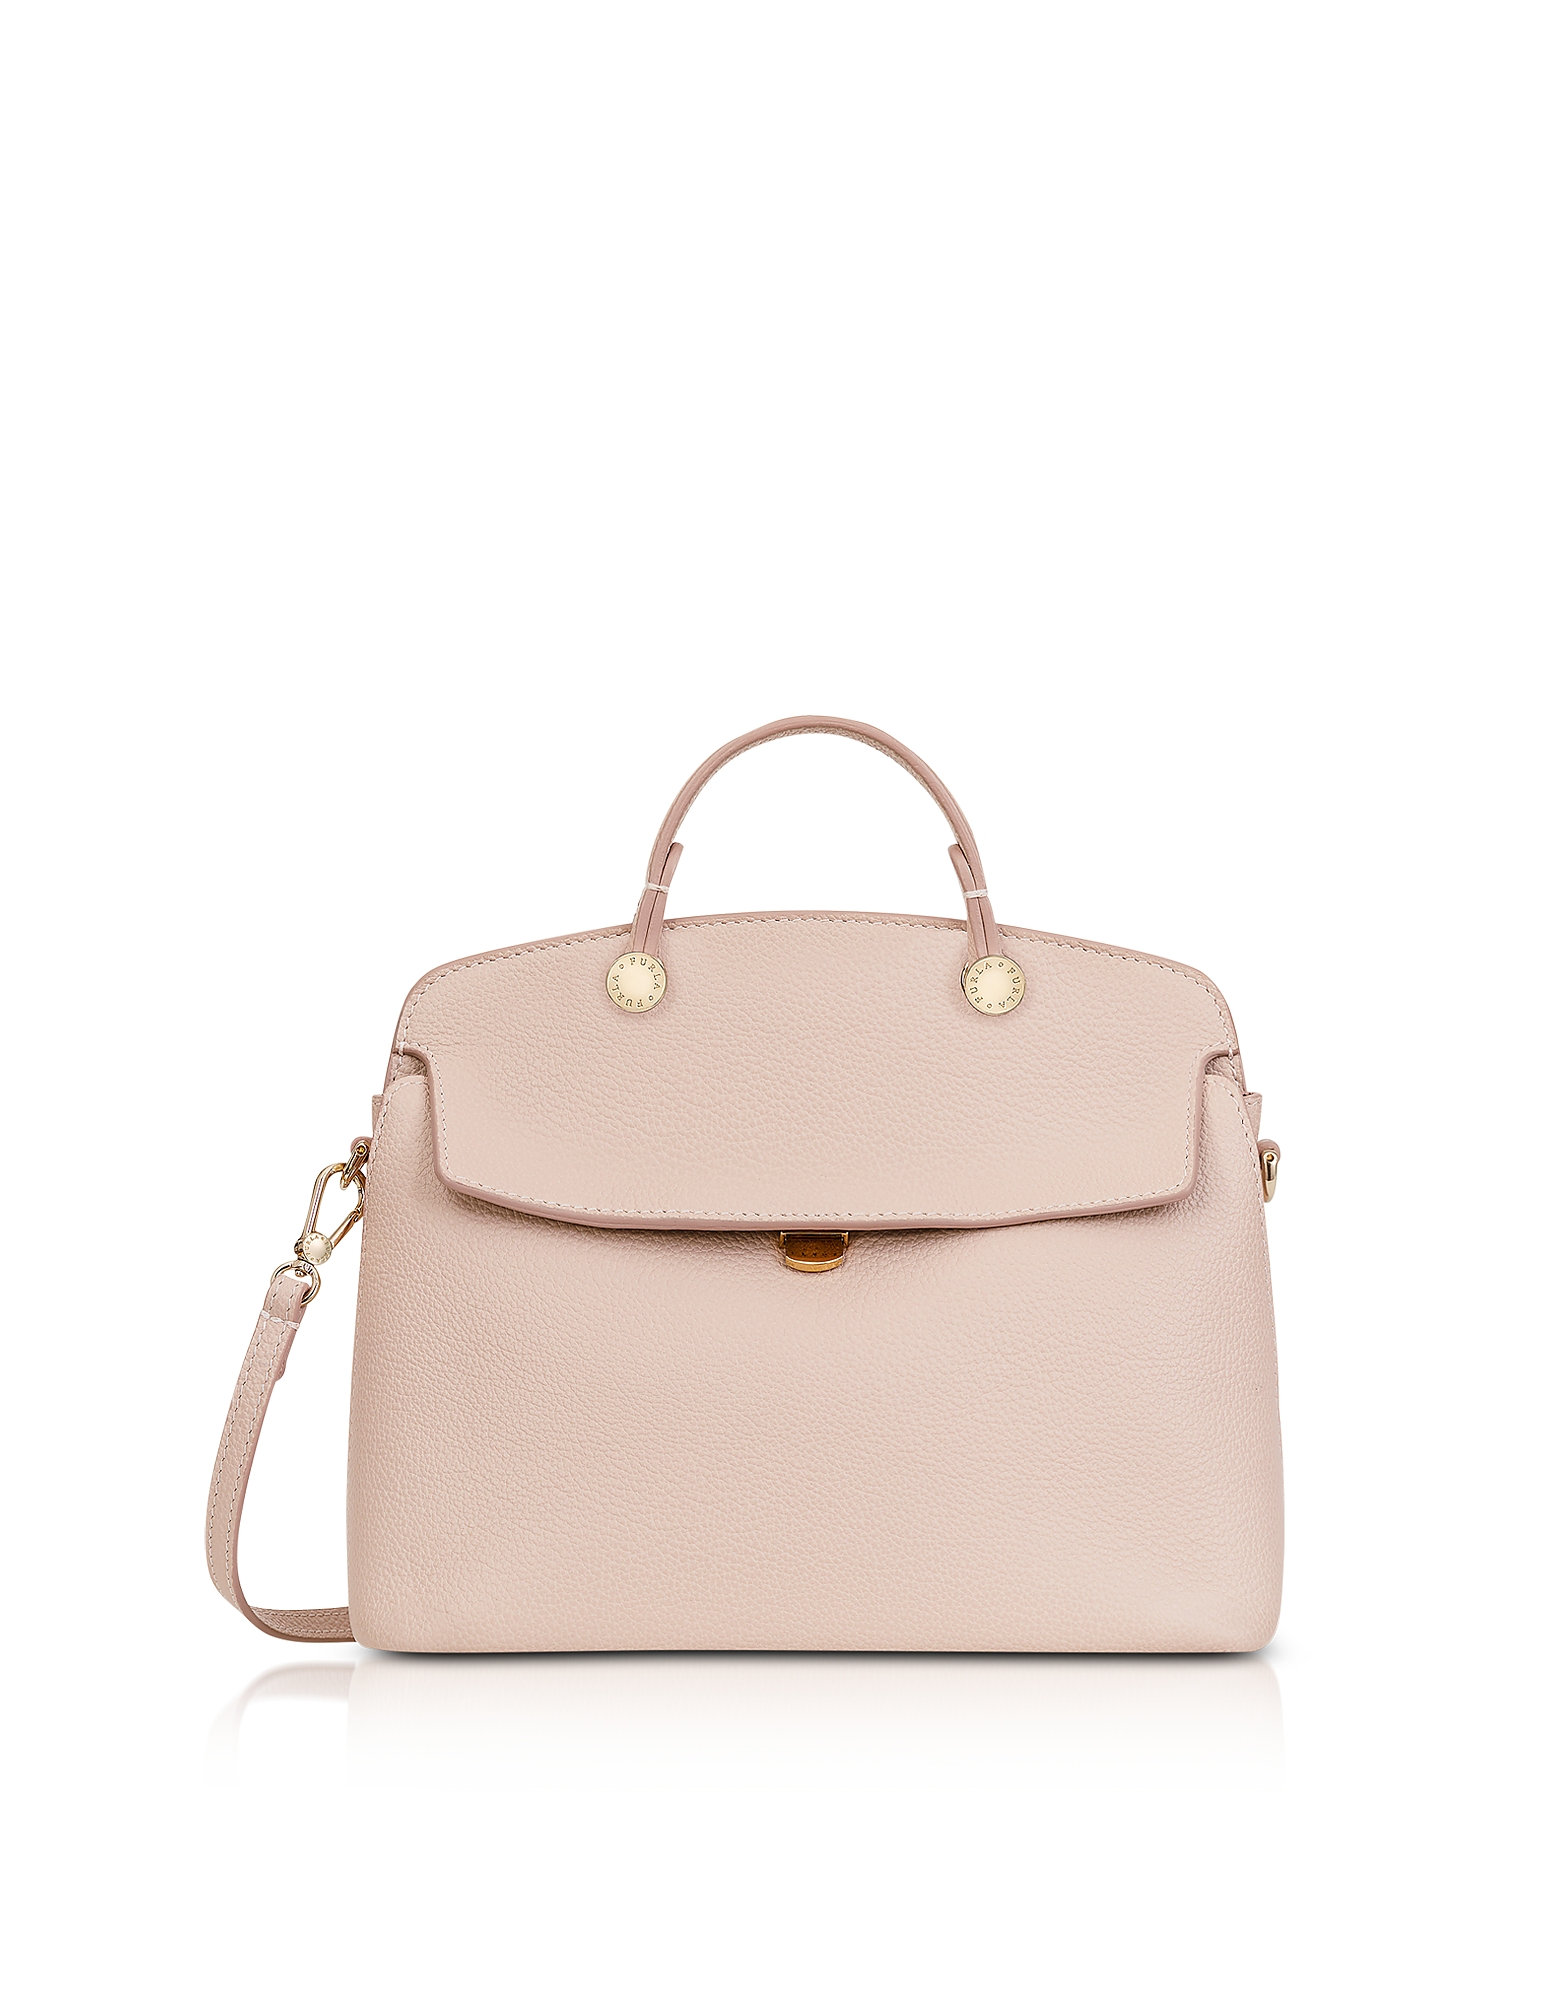 Magnolia Leather My Piper Small Satchel